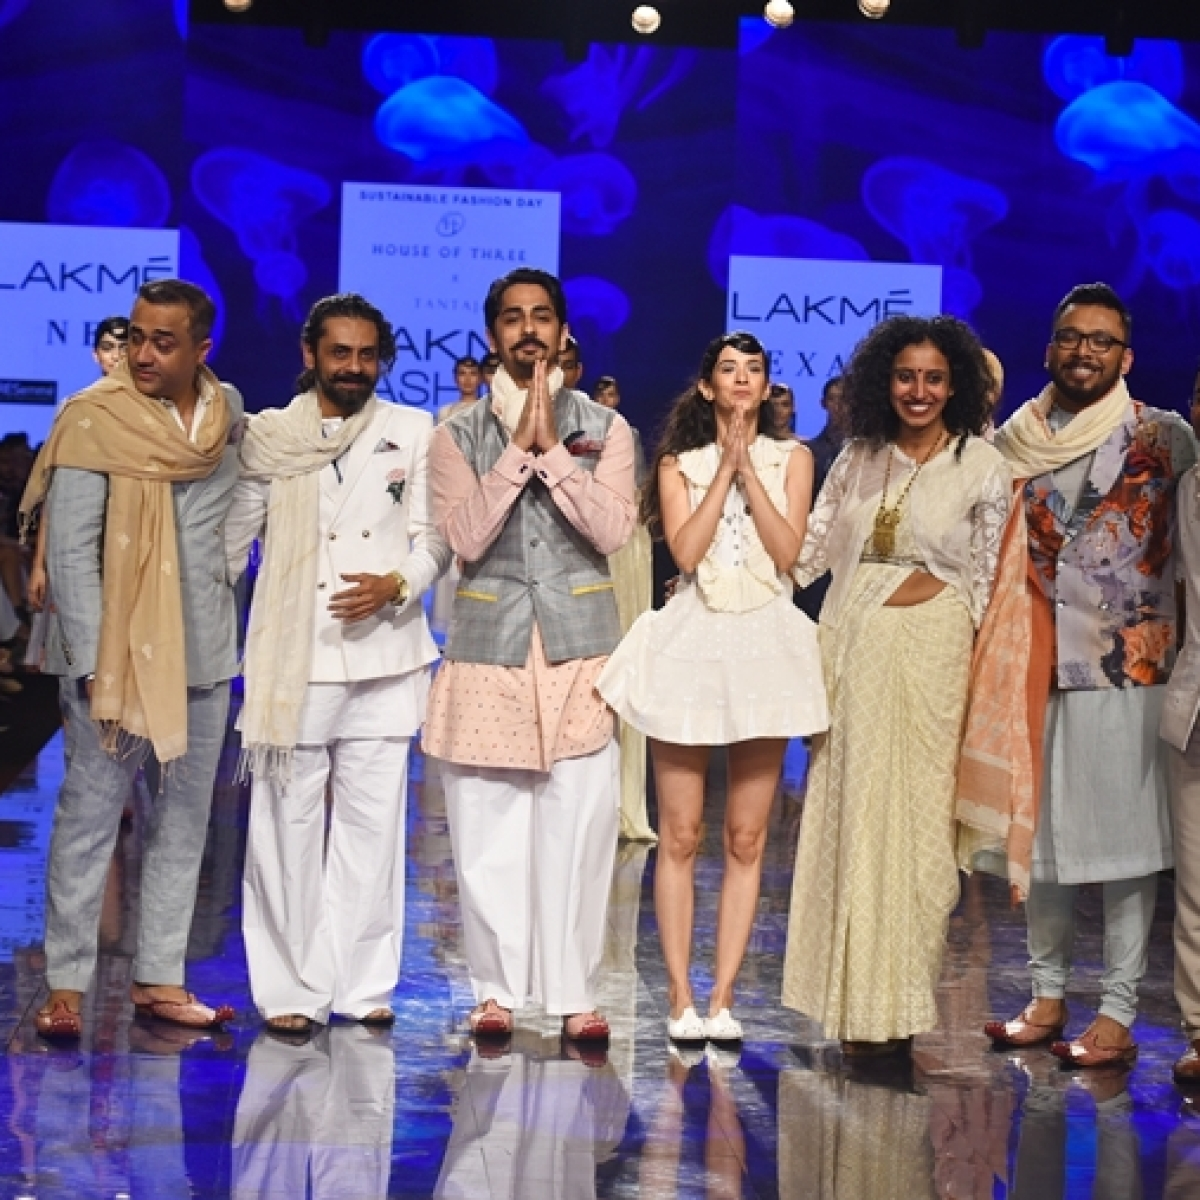 Fashion without borders on Day 2 at Lakme Fashion Week Summer/Resort 2020